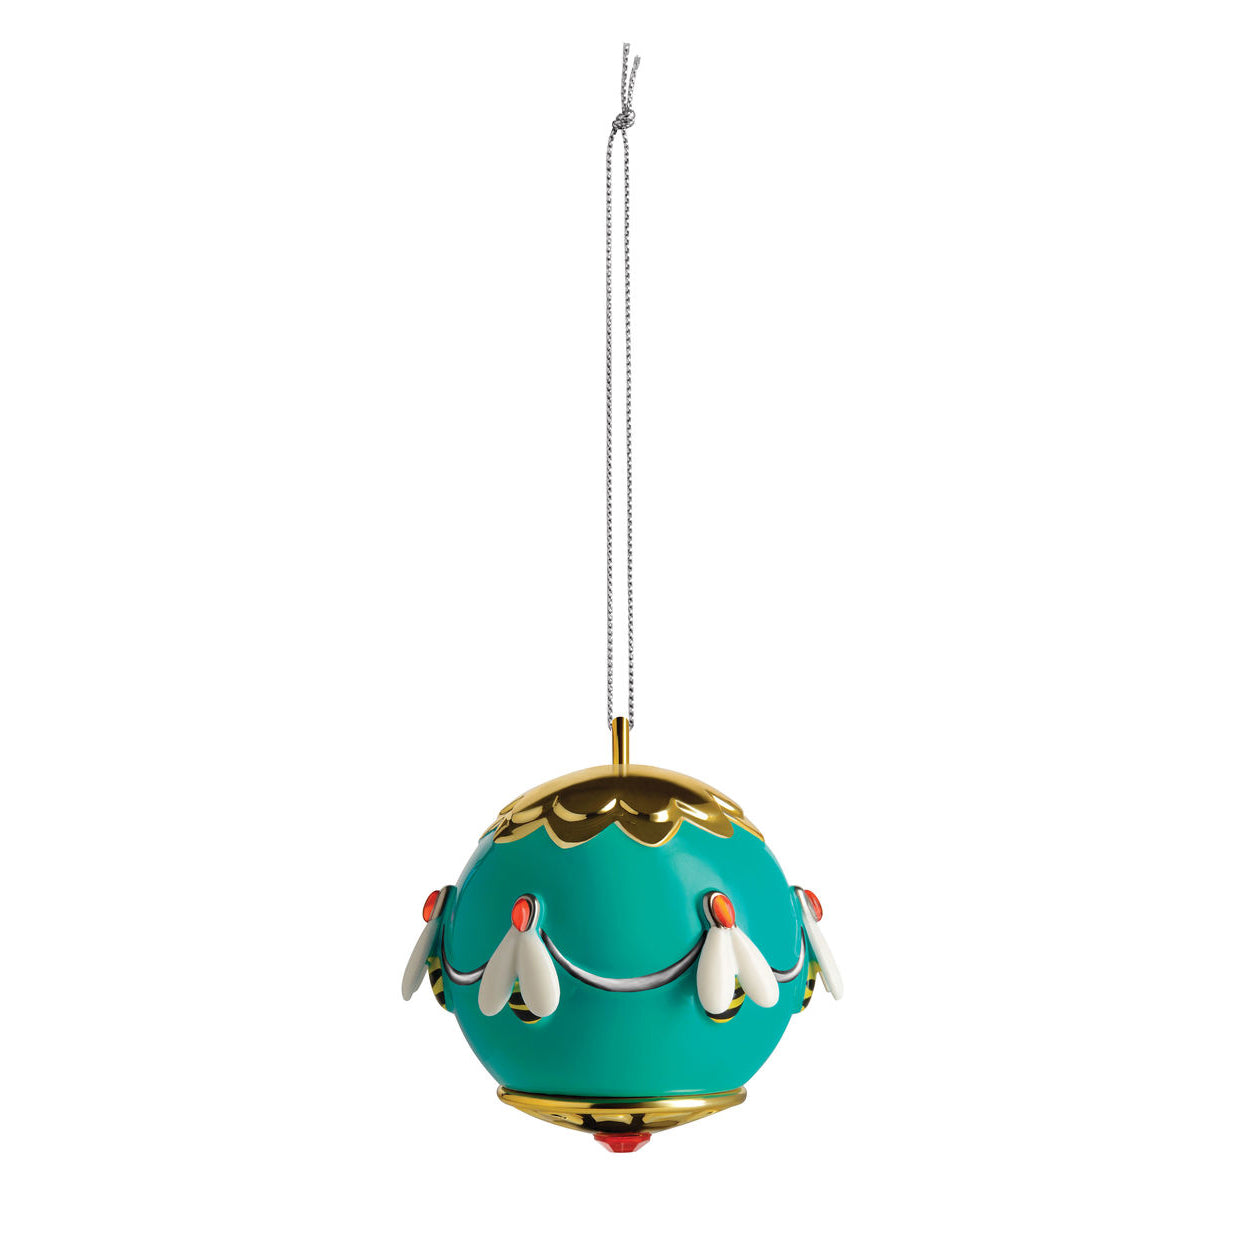 Faberjori Christmas Ornaments by Alessi - Emmo Home